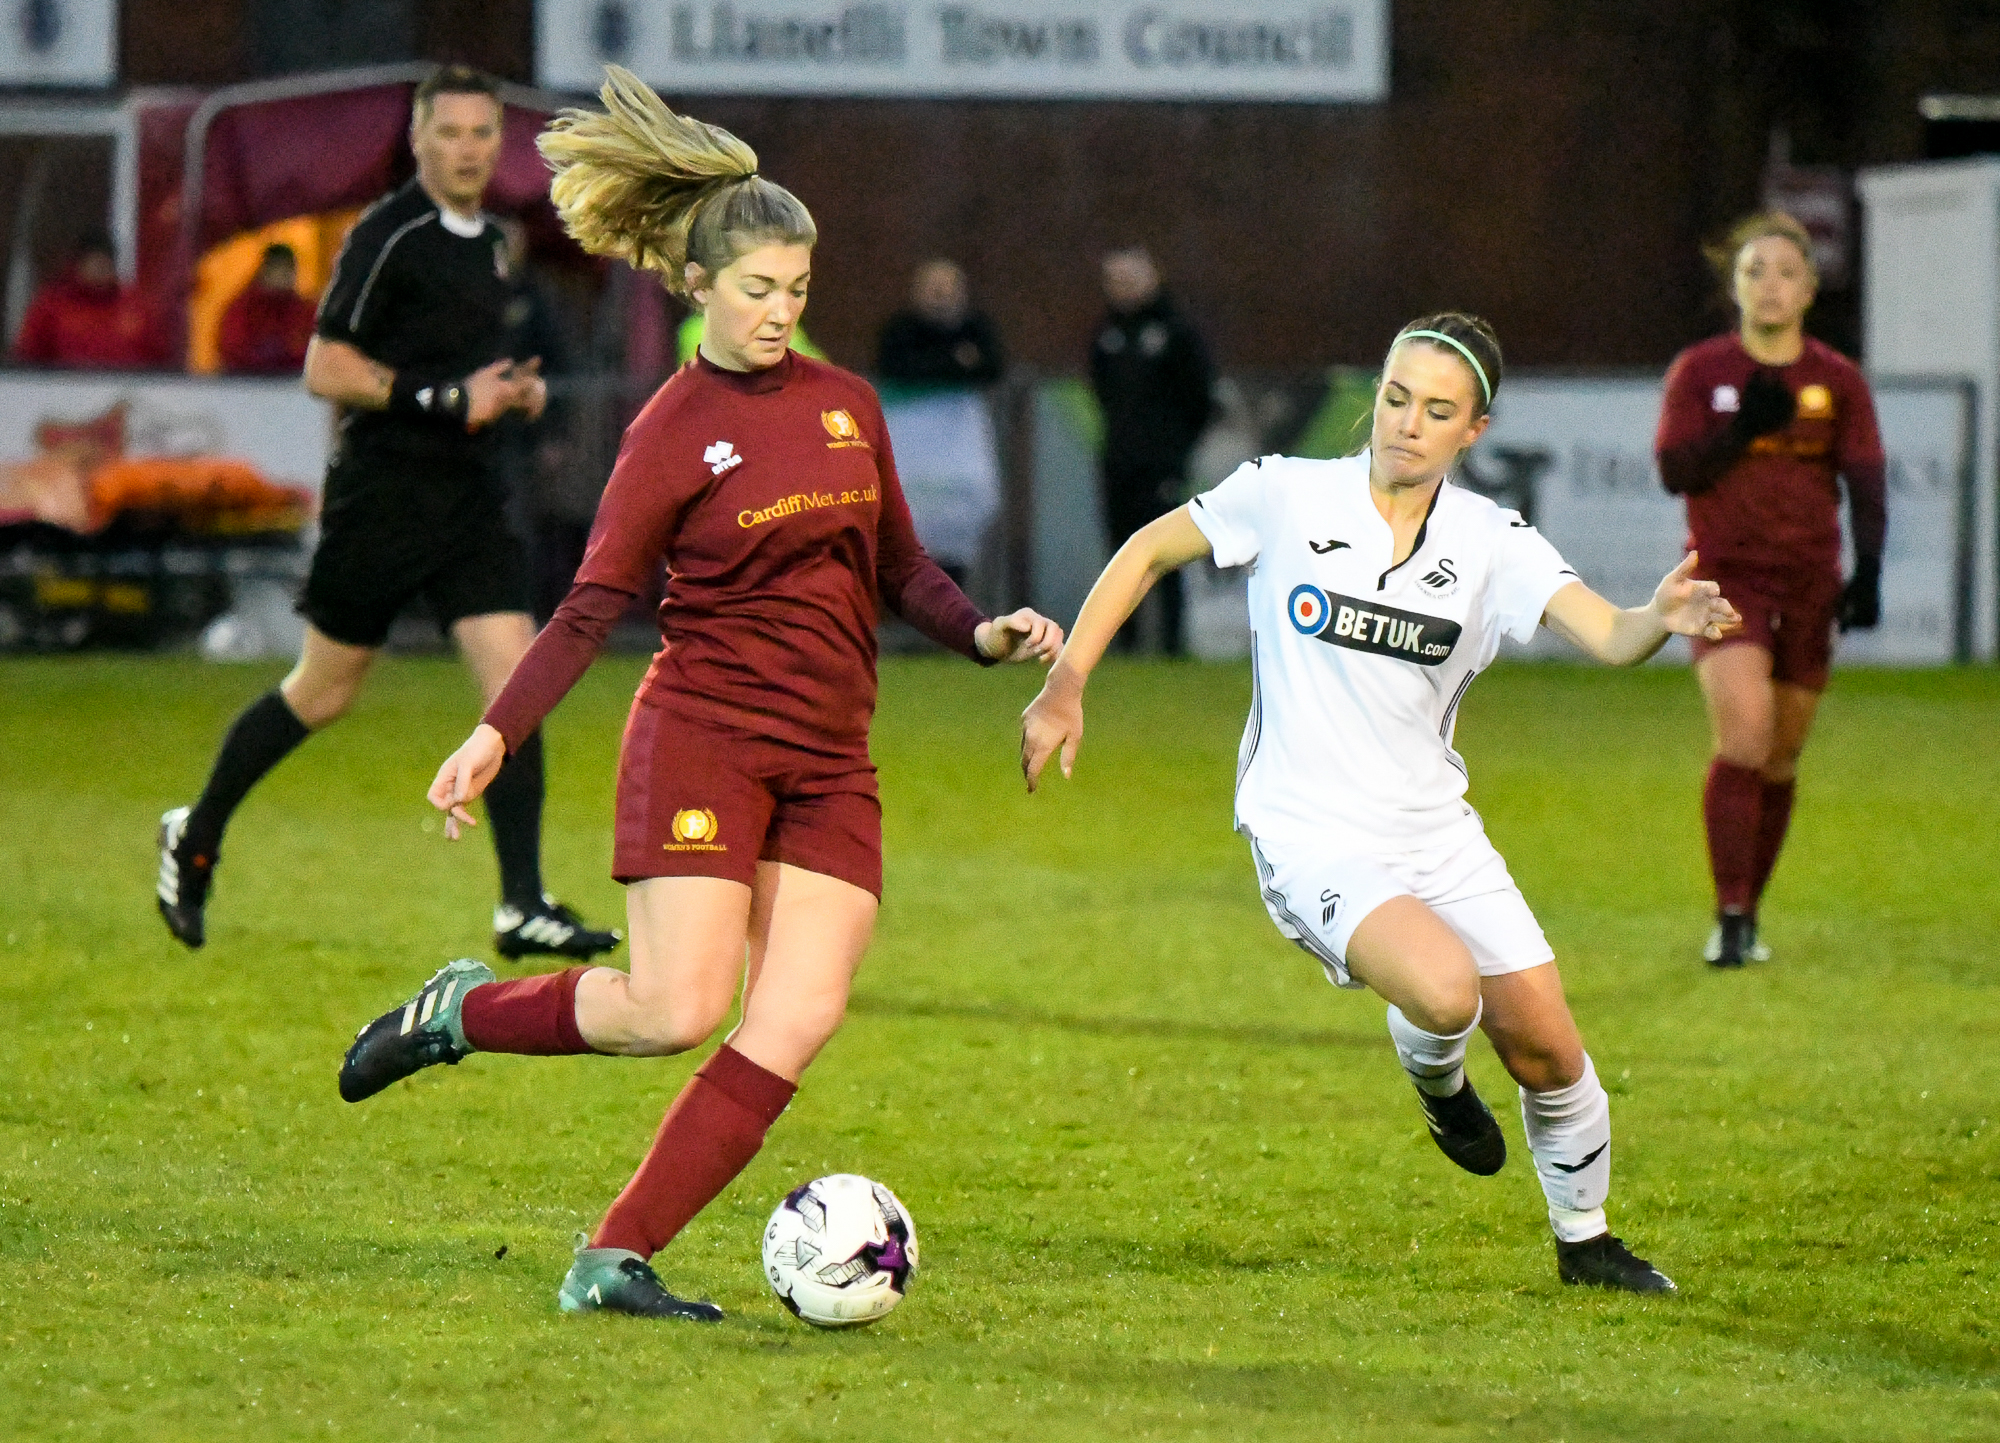 Cardiff Met Women v Swansea City Ladies – Welsh Premier Women's League Cup Final 2019